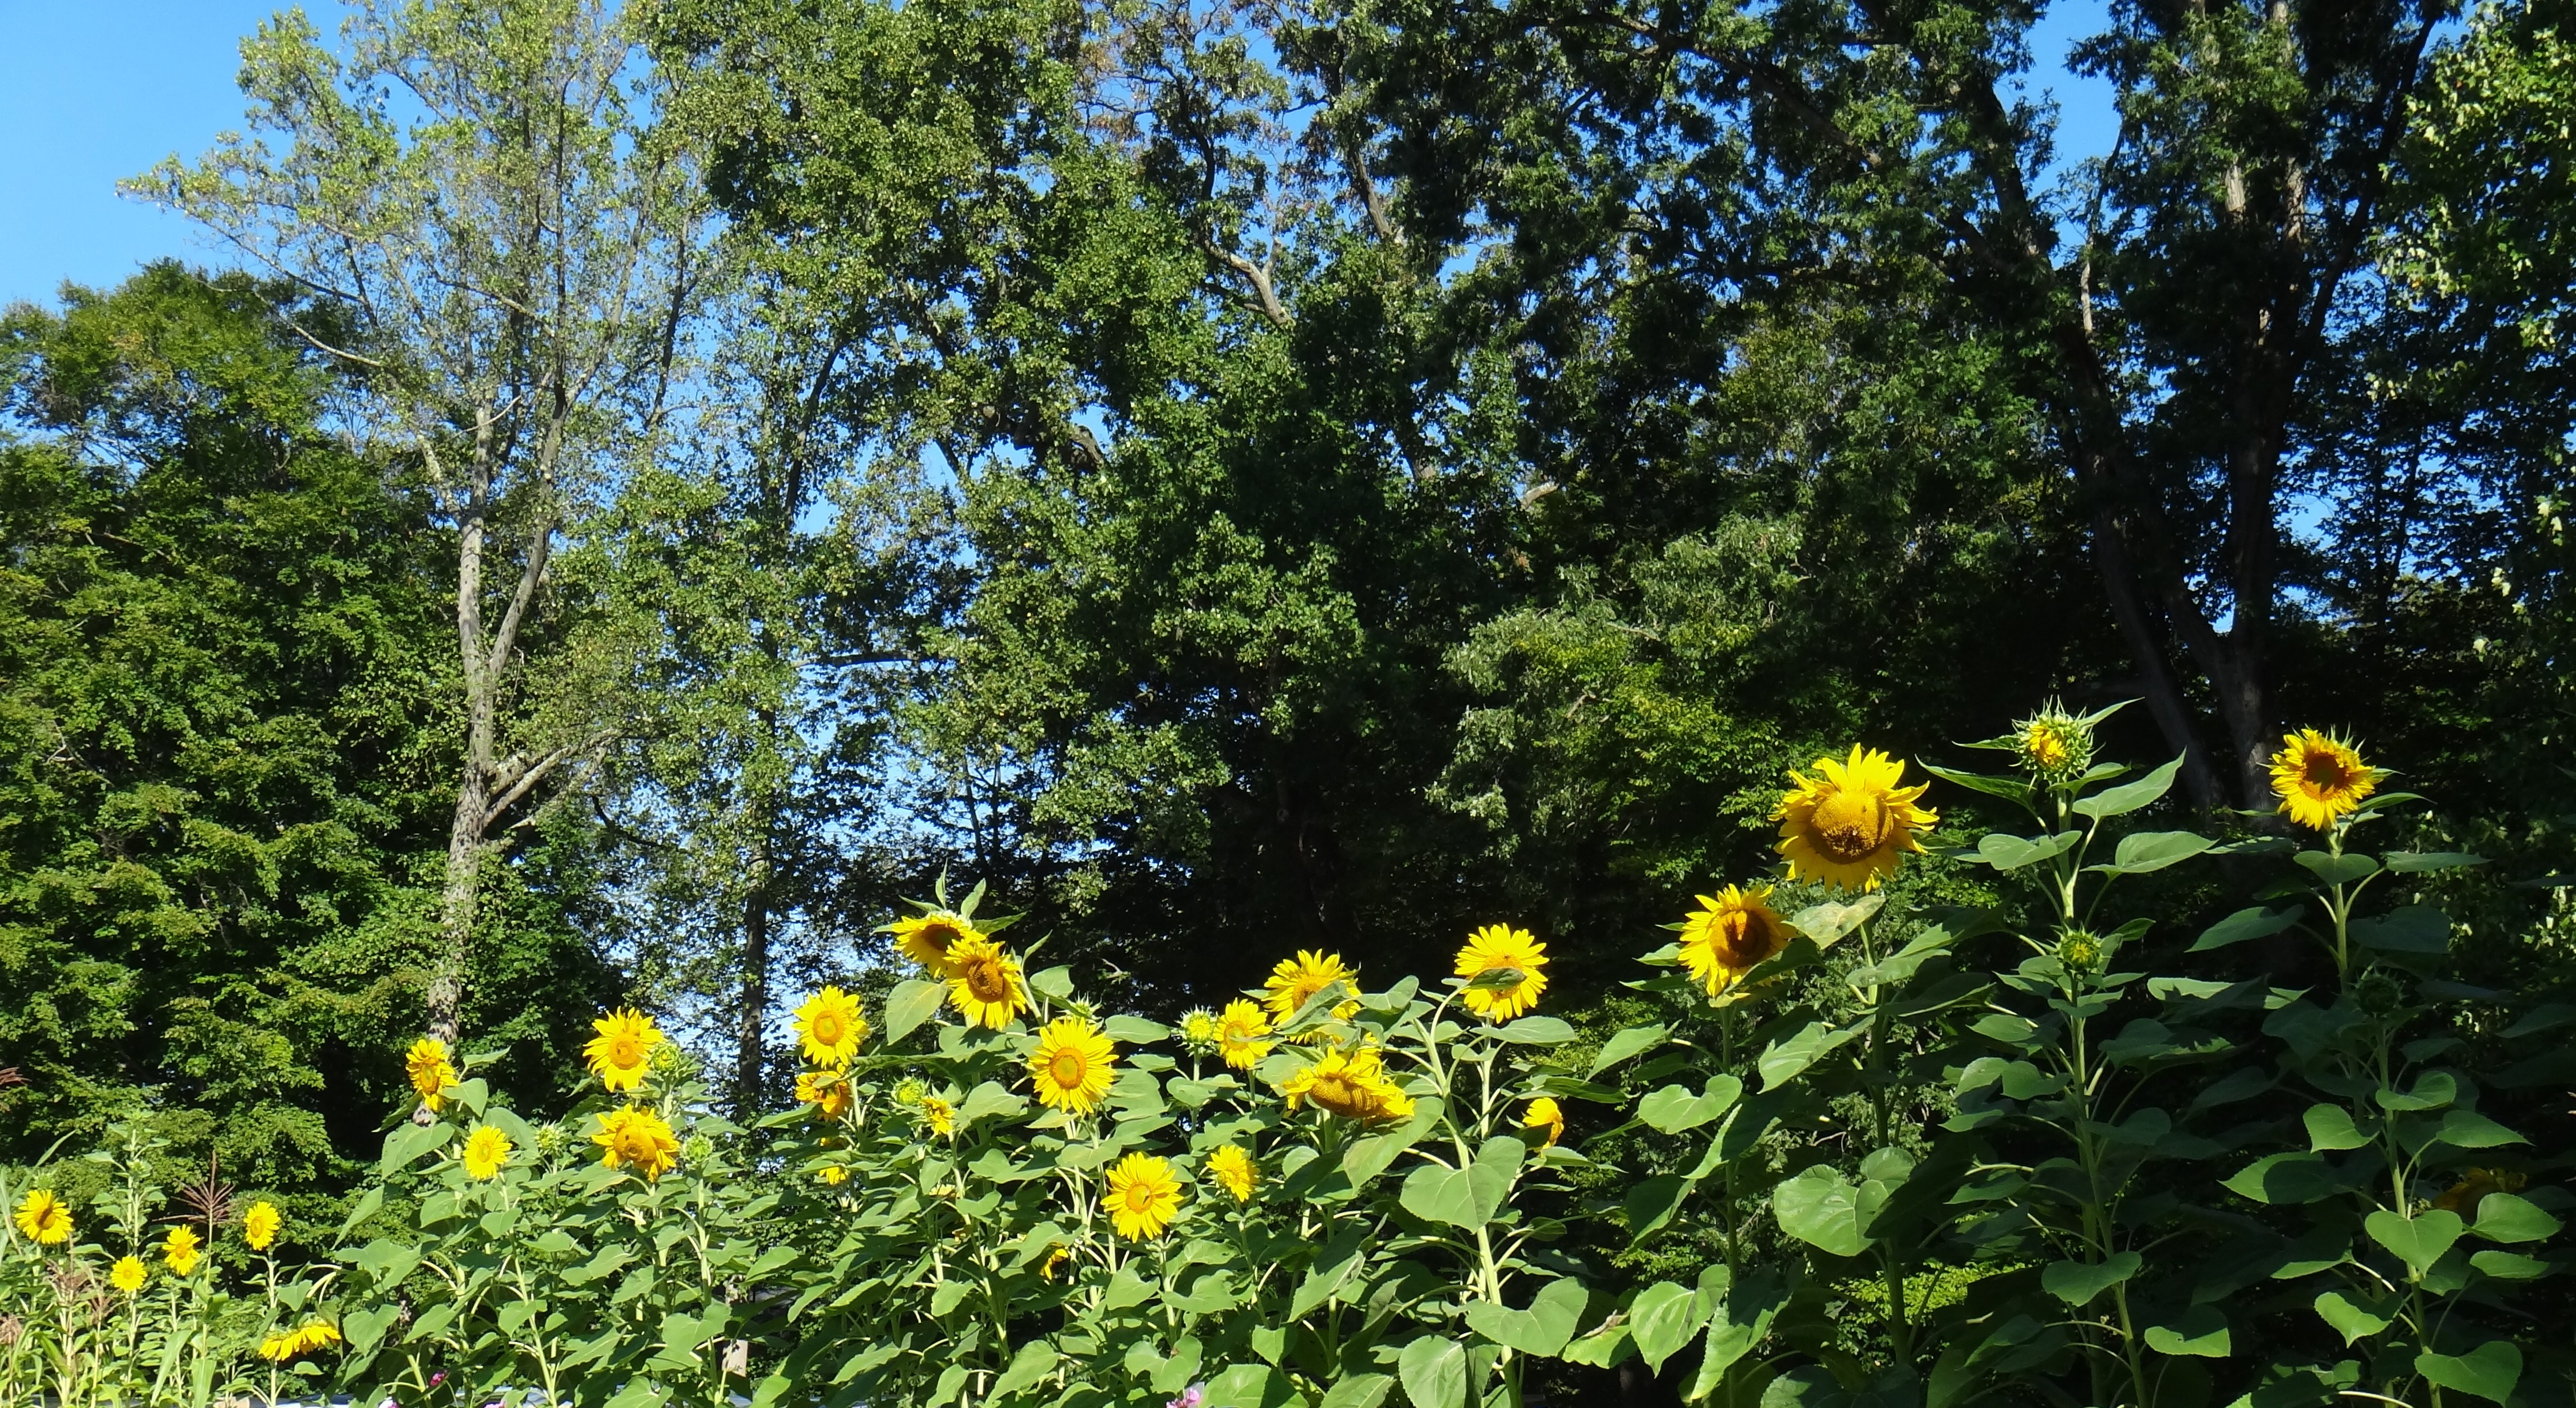 sunflower mature personals 5 sunflower fields to visit in maryland  you could at least get an awesome instagram out of a trip to a sunflower field  very mature 4.